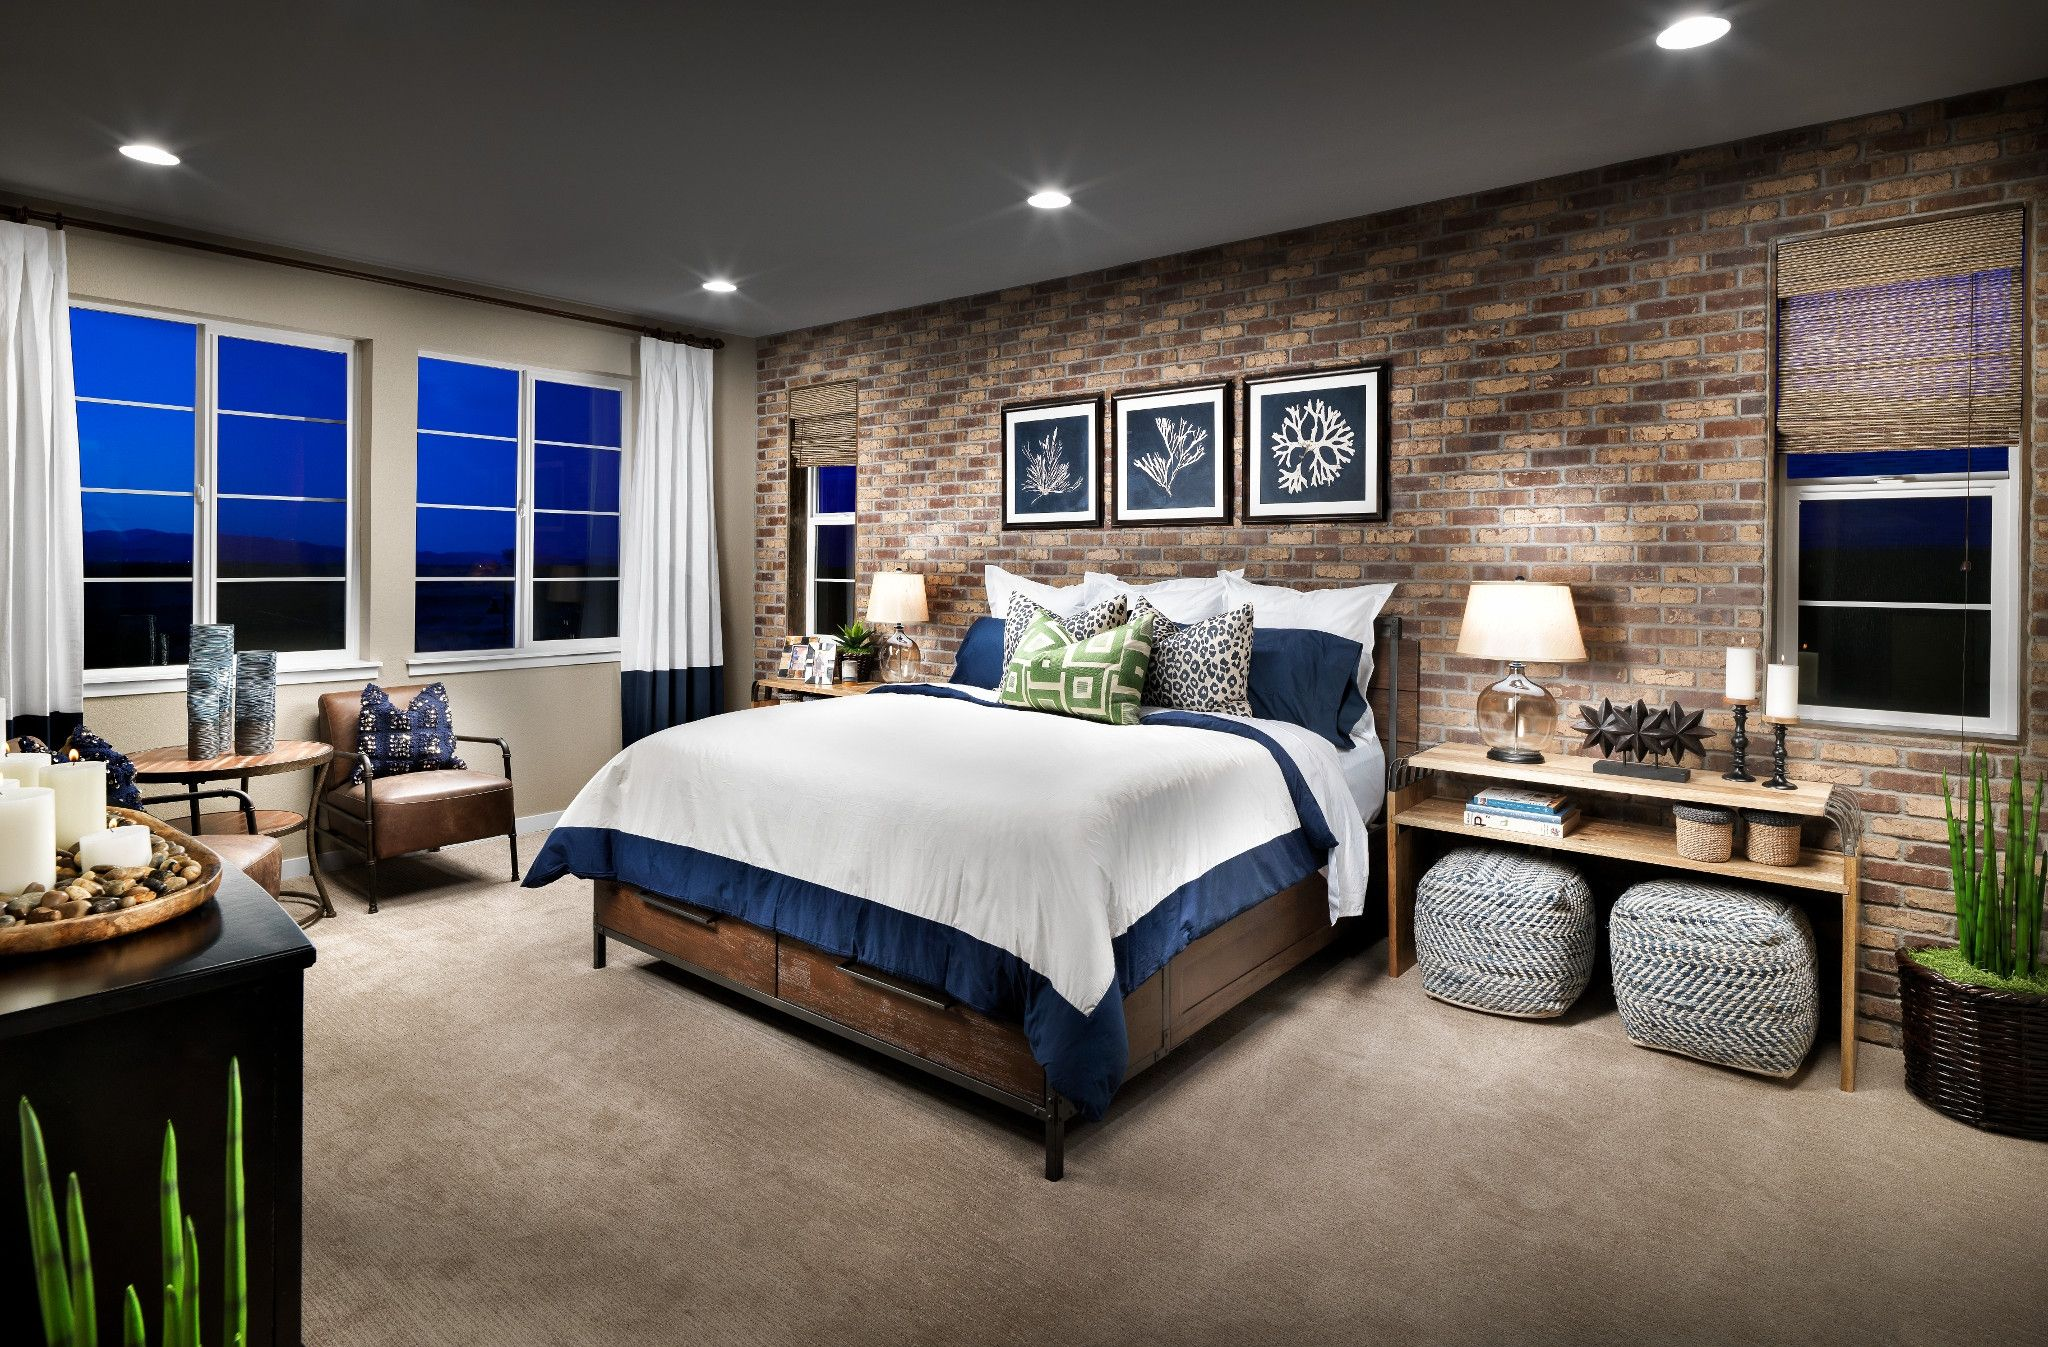 Bedroom featured in the 5204  Torrey Pine By Shea Homes in Denver, CO